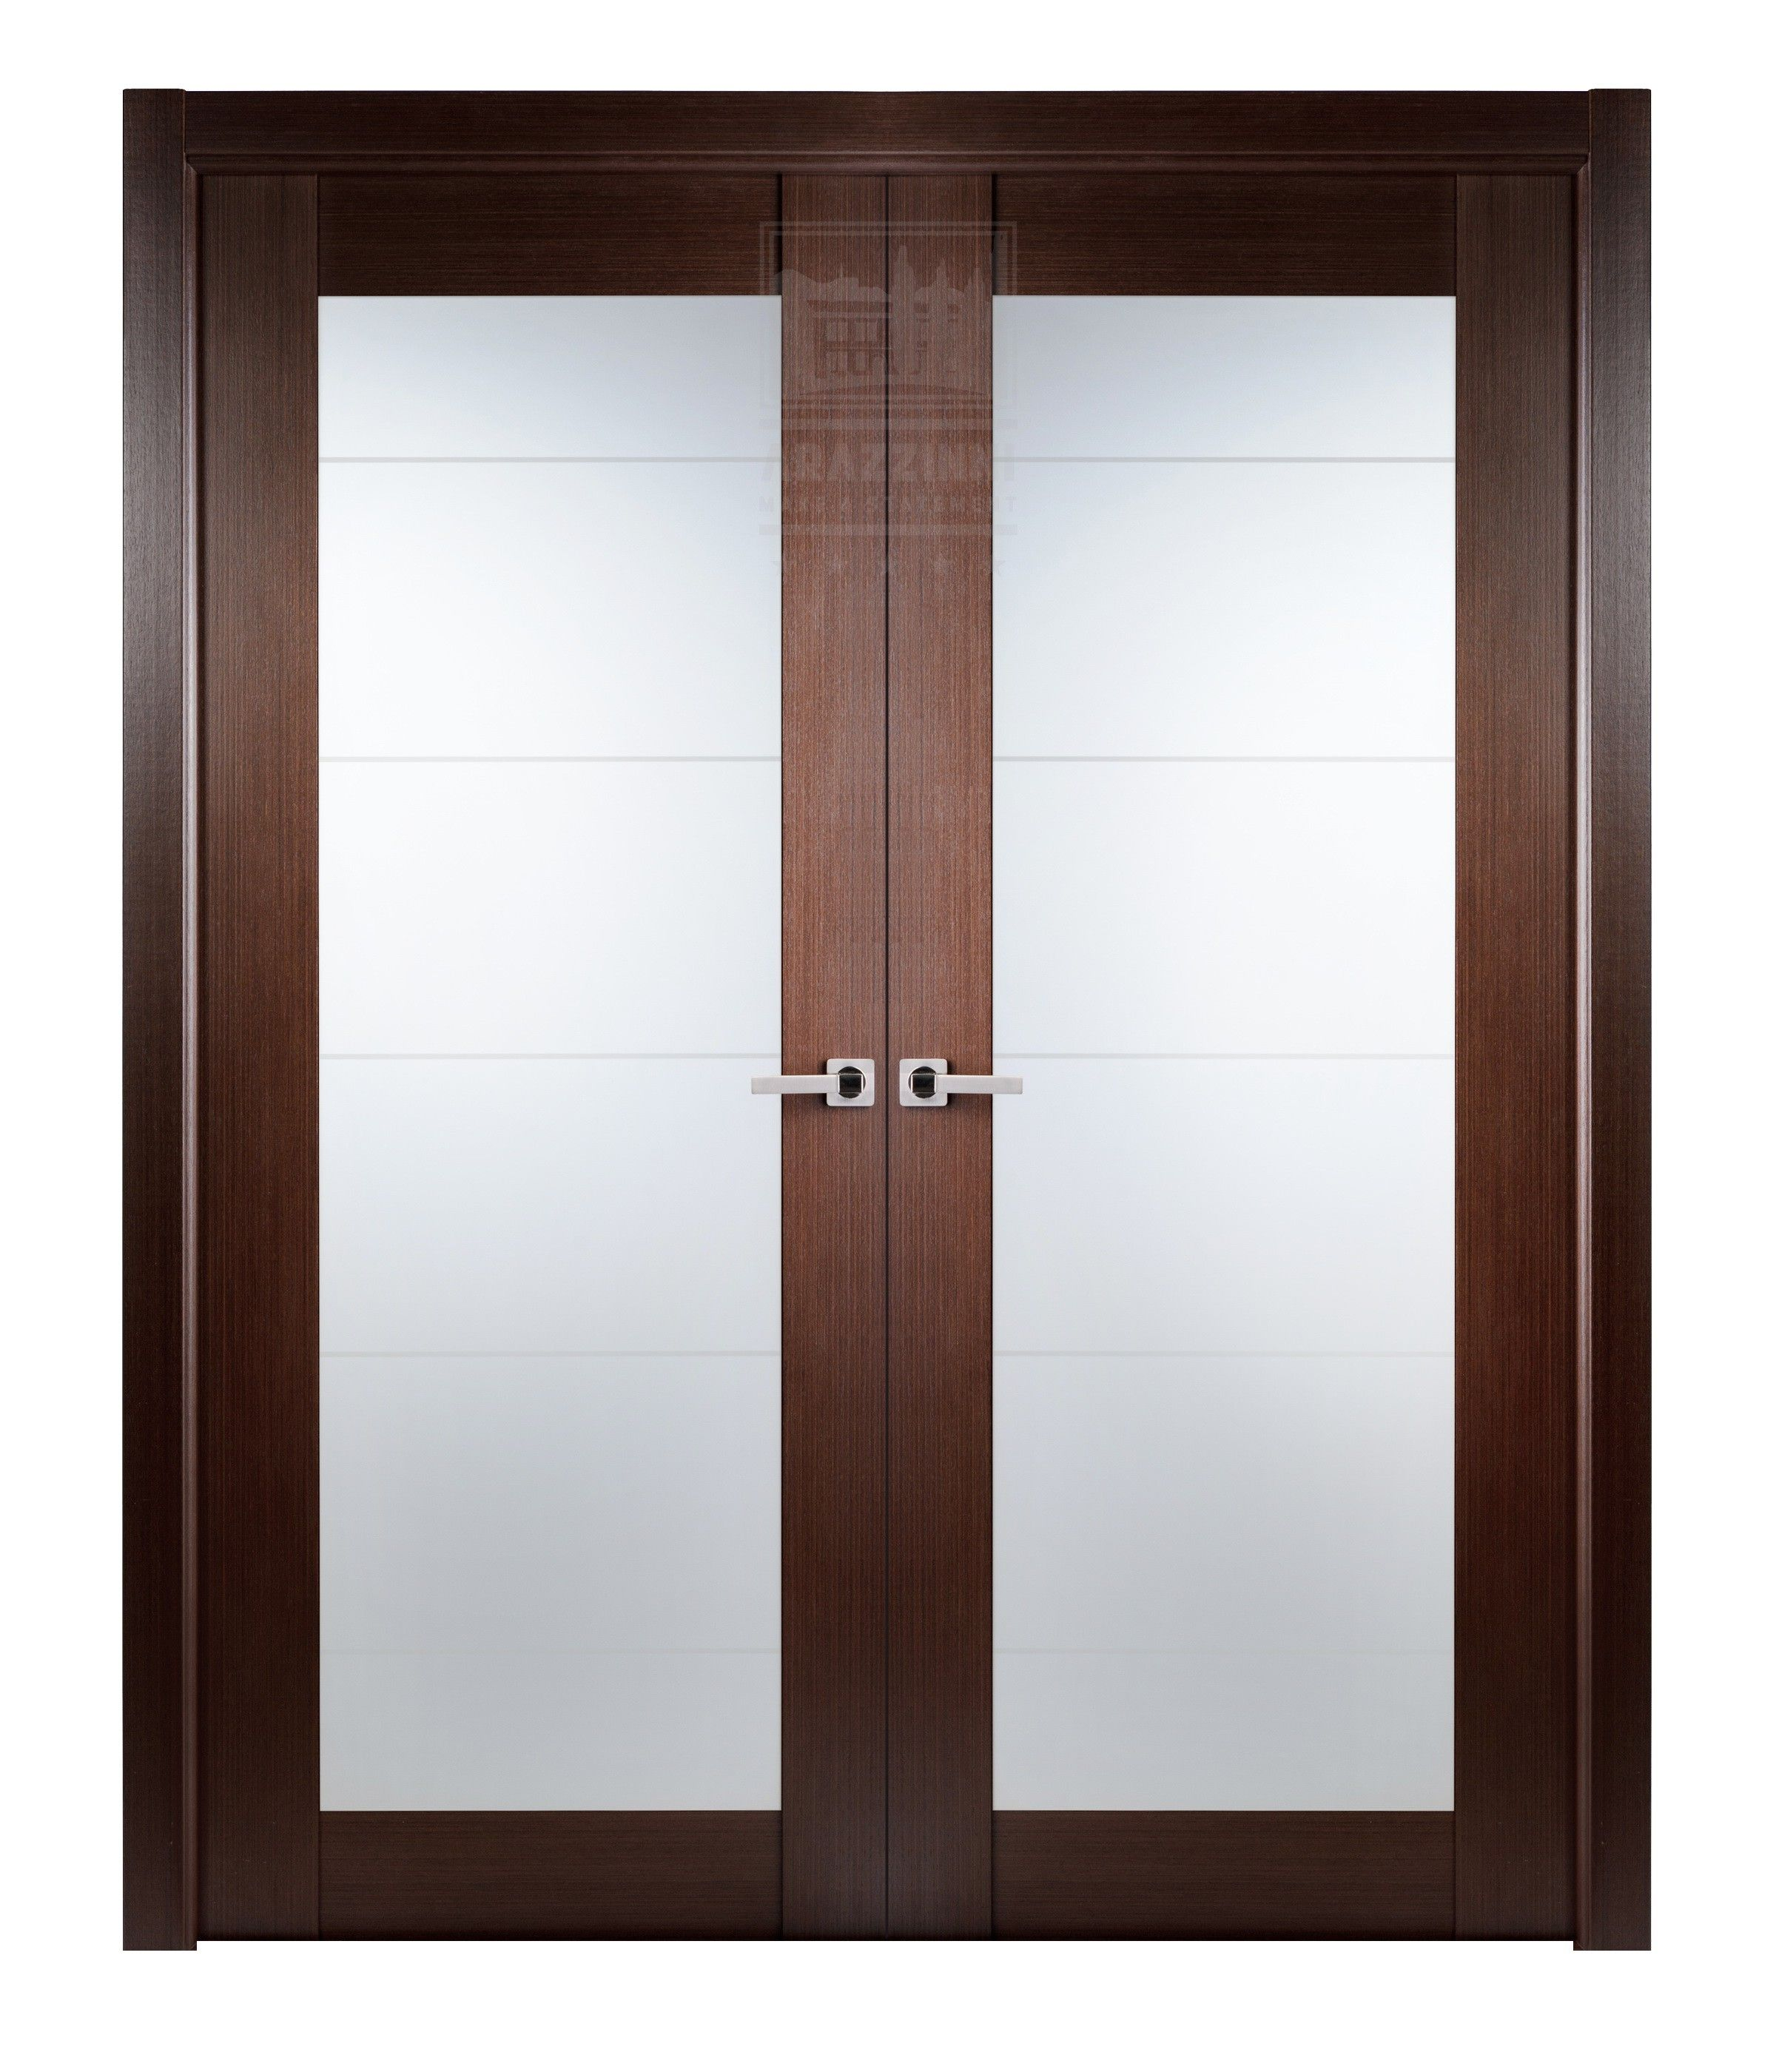 $1500 for widest top end selections door foyer to living room Arazzinni Maximum 209